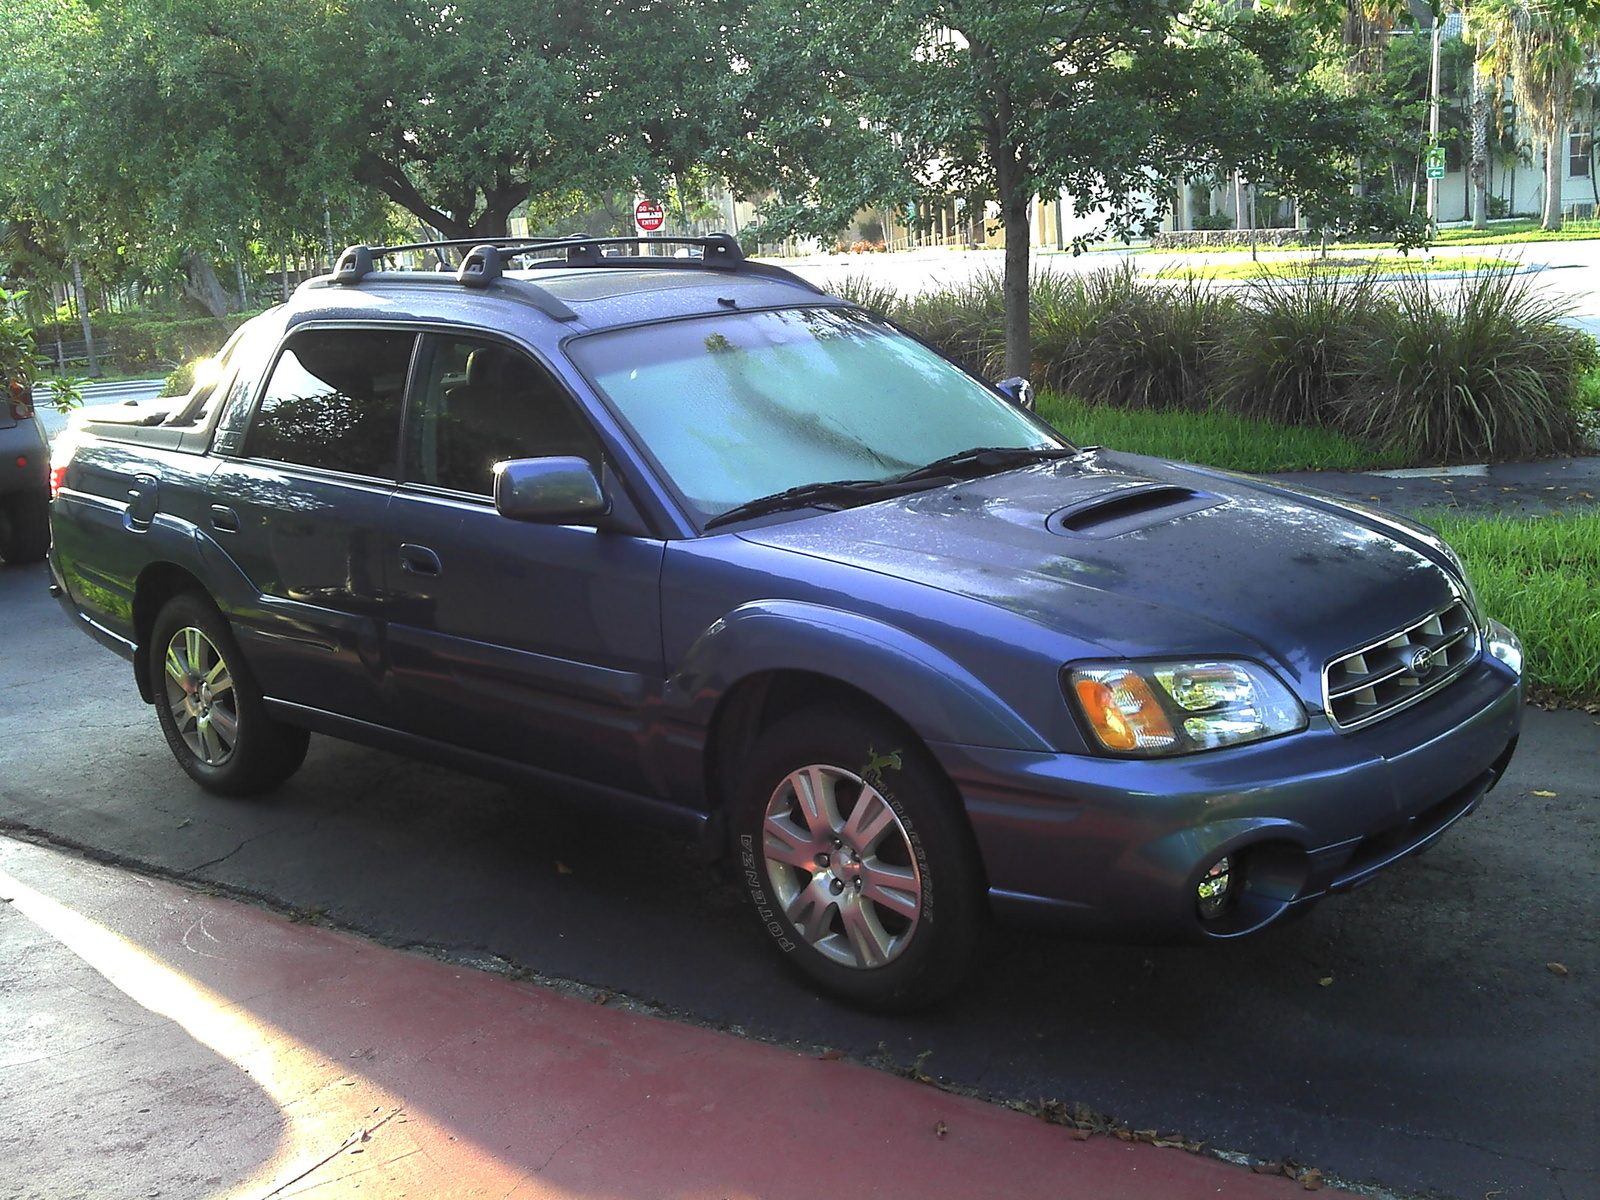 subaru baja turbo - 2006 subaru baja pictures picture of 2006 subaru baja tu [1600x1200] | FileSize: 816.91 KB | Download. subaru baja turbo ...